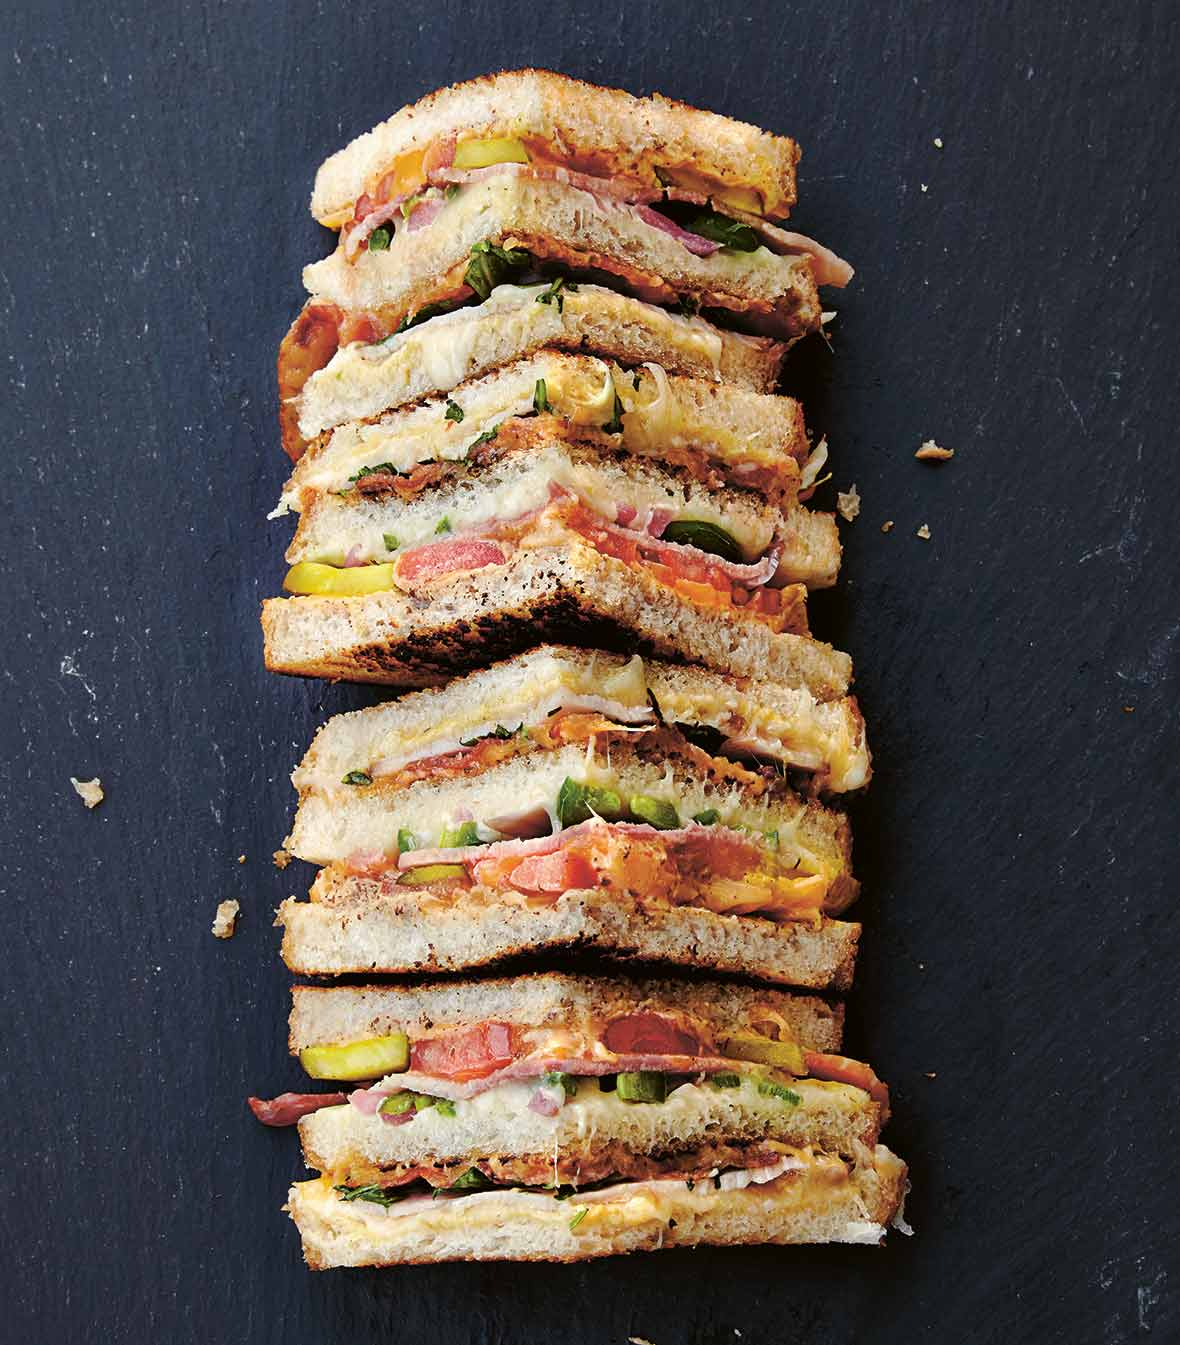 A grilled cheese with everything cut into four quarters.